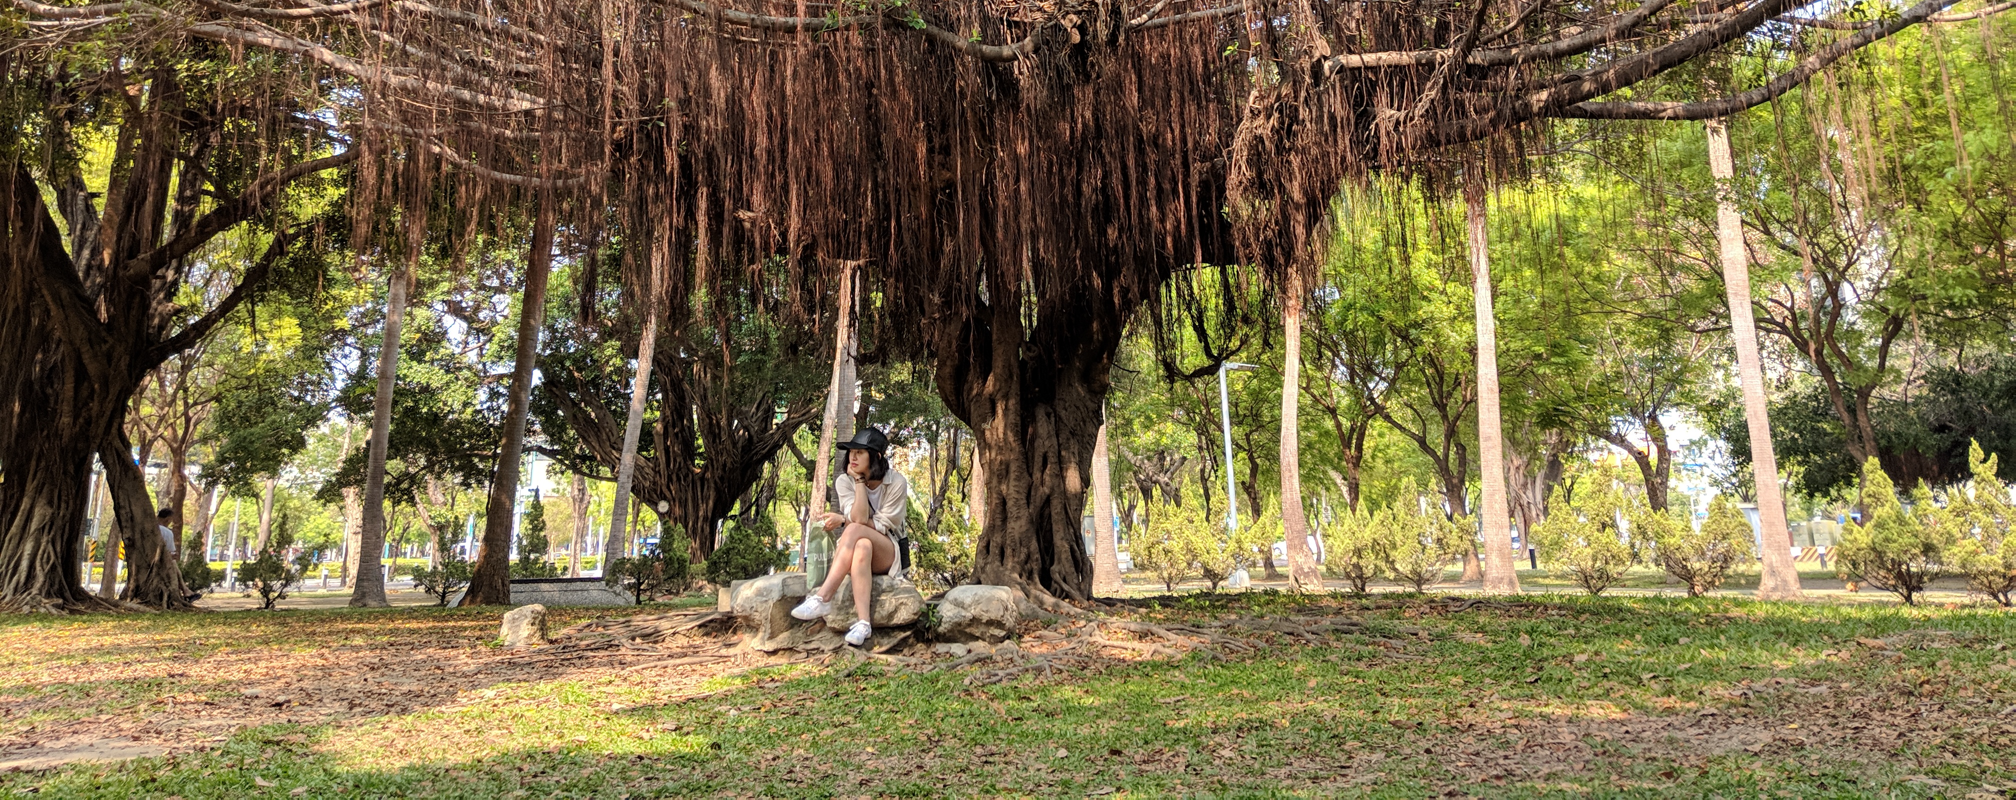 Elysia sitting in front of a tree in Kaohsiung